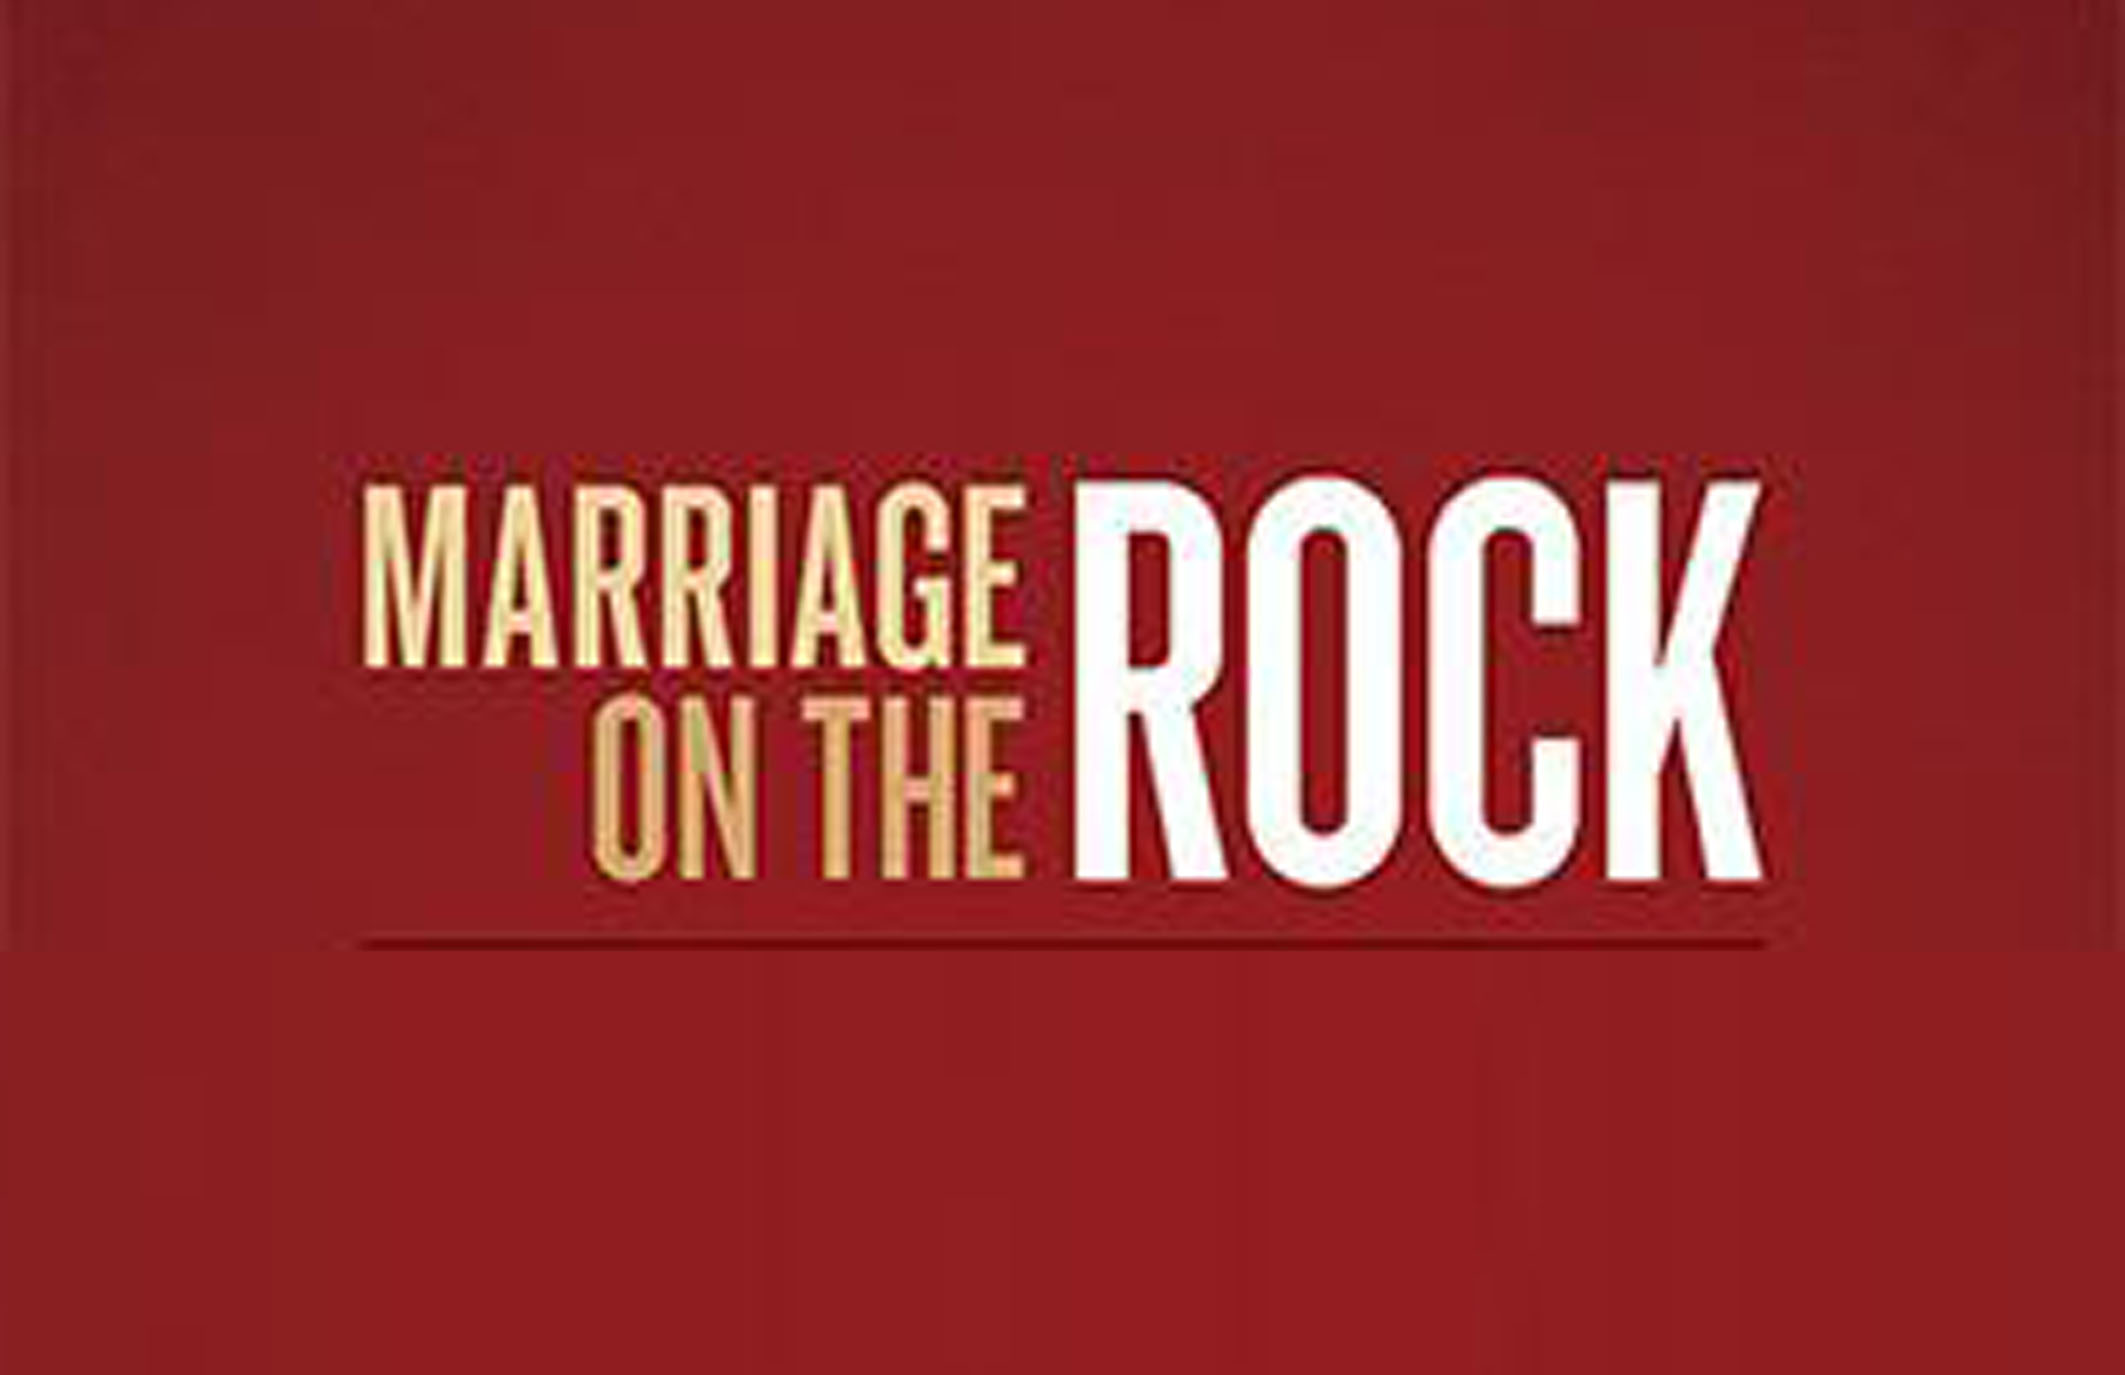 Marriage on the rock logo